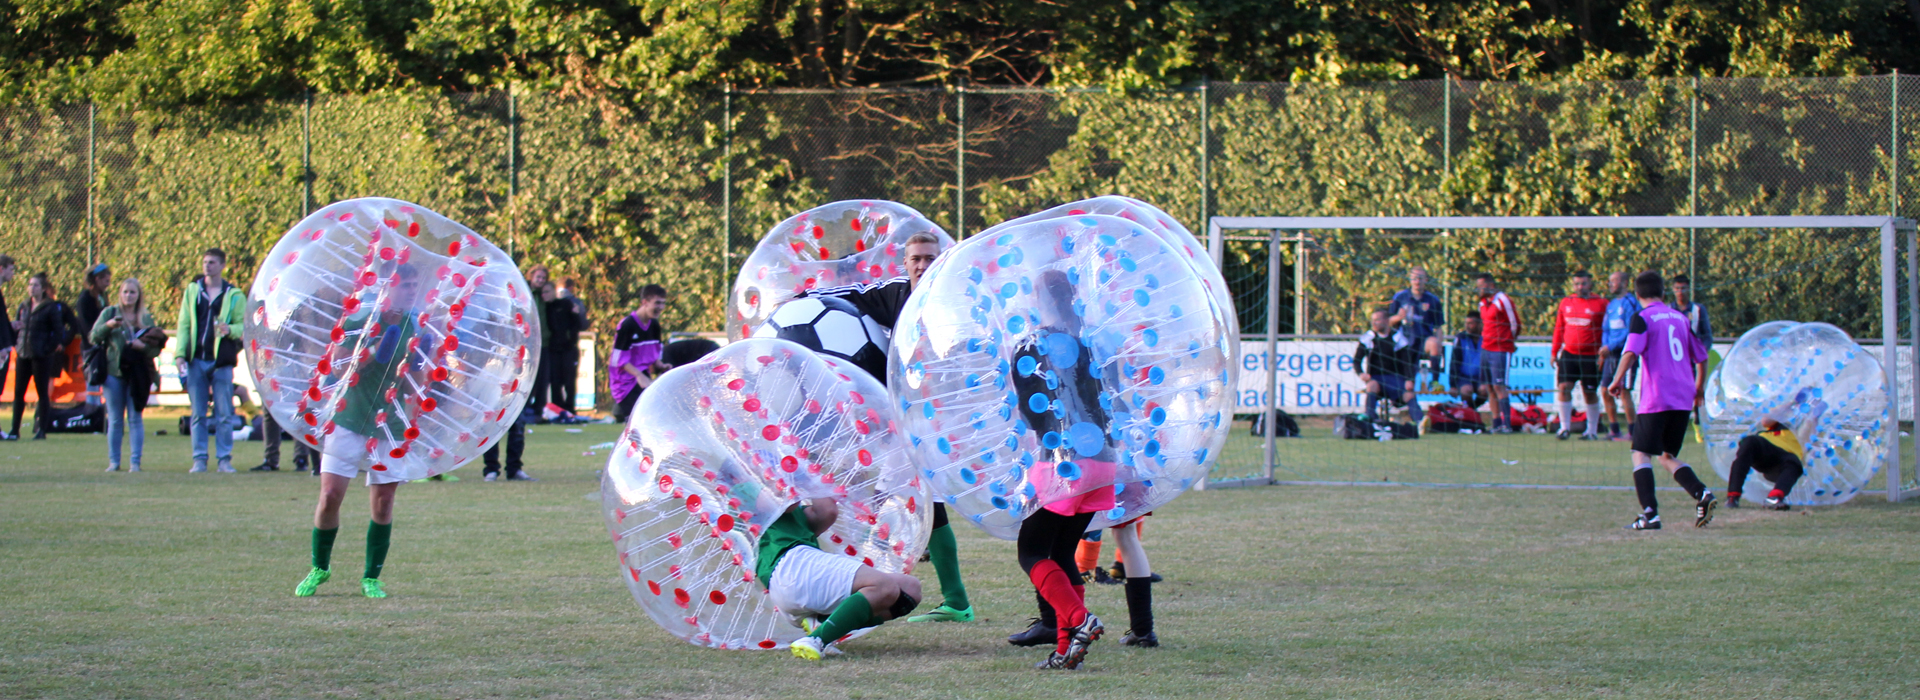 crazy-bubbleball_02